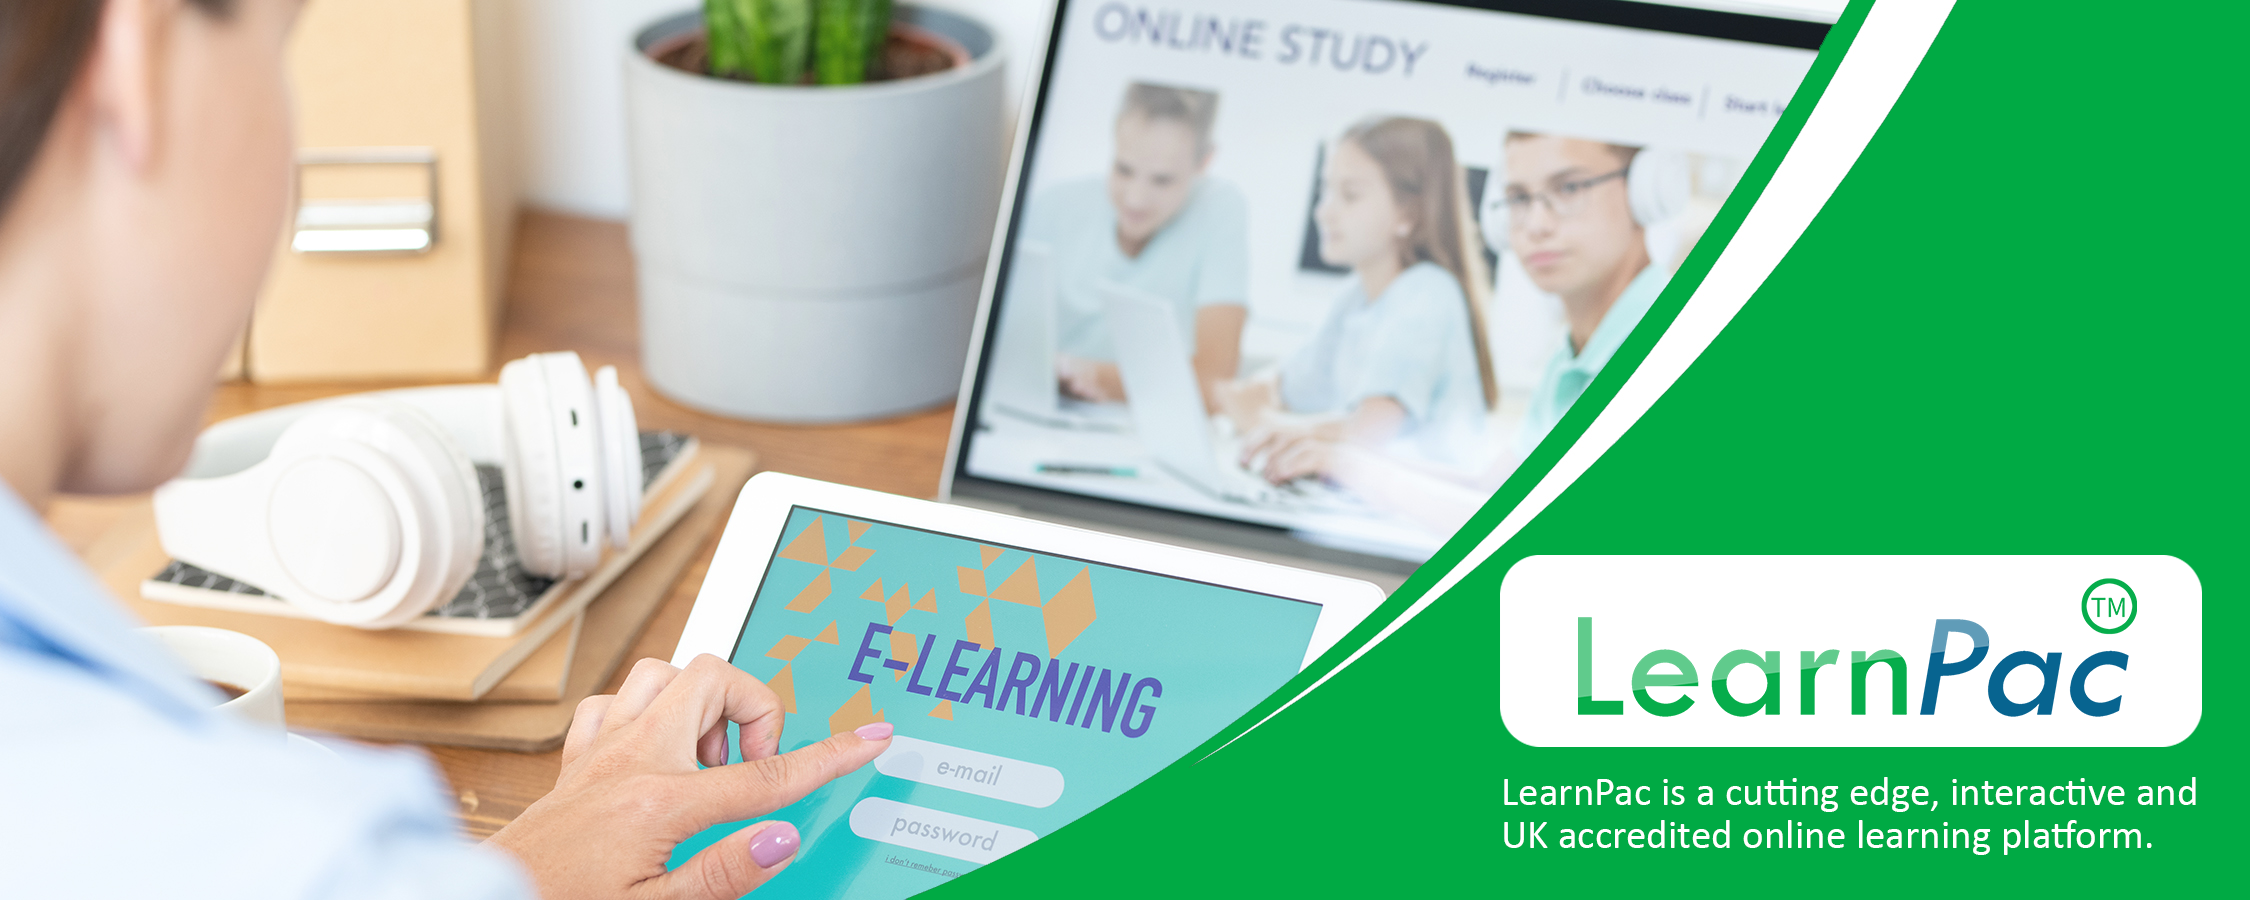 Preventing Radicalisation - Online Learning Courses - E-Learning Courses - LearnPac Systems UK -